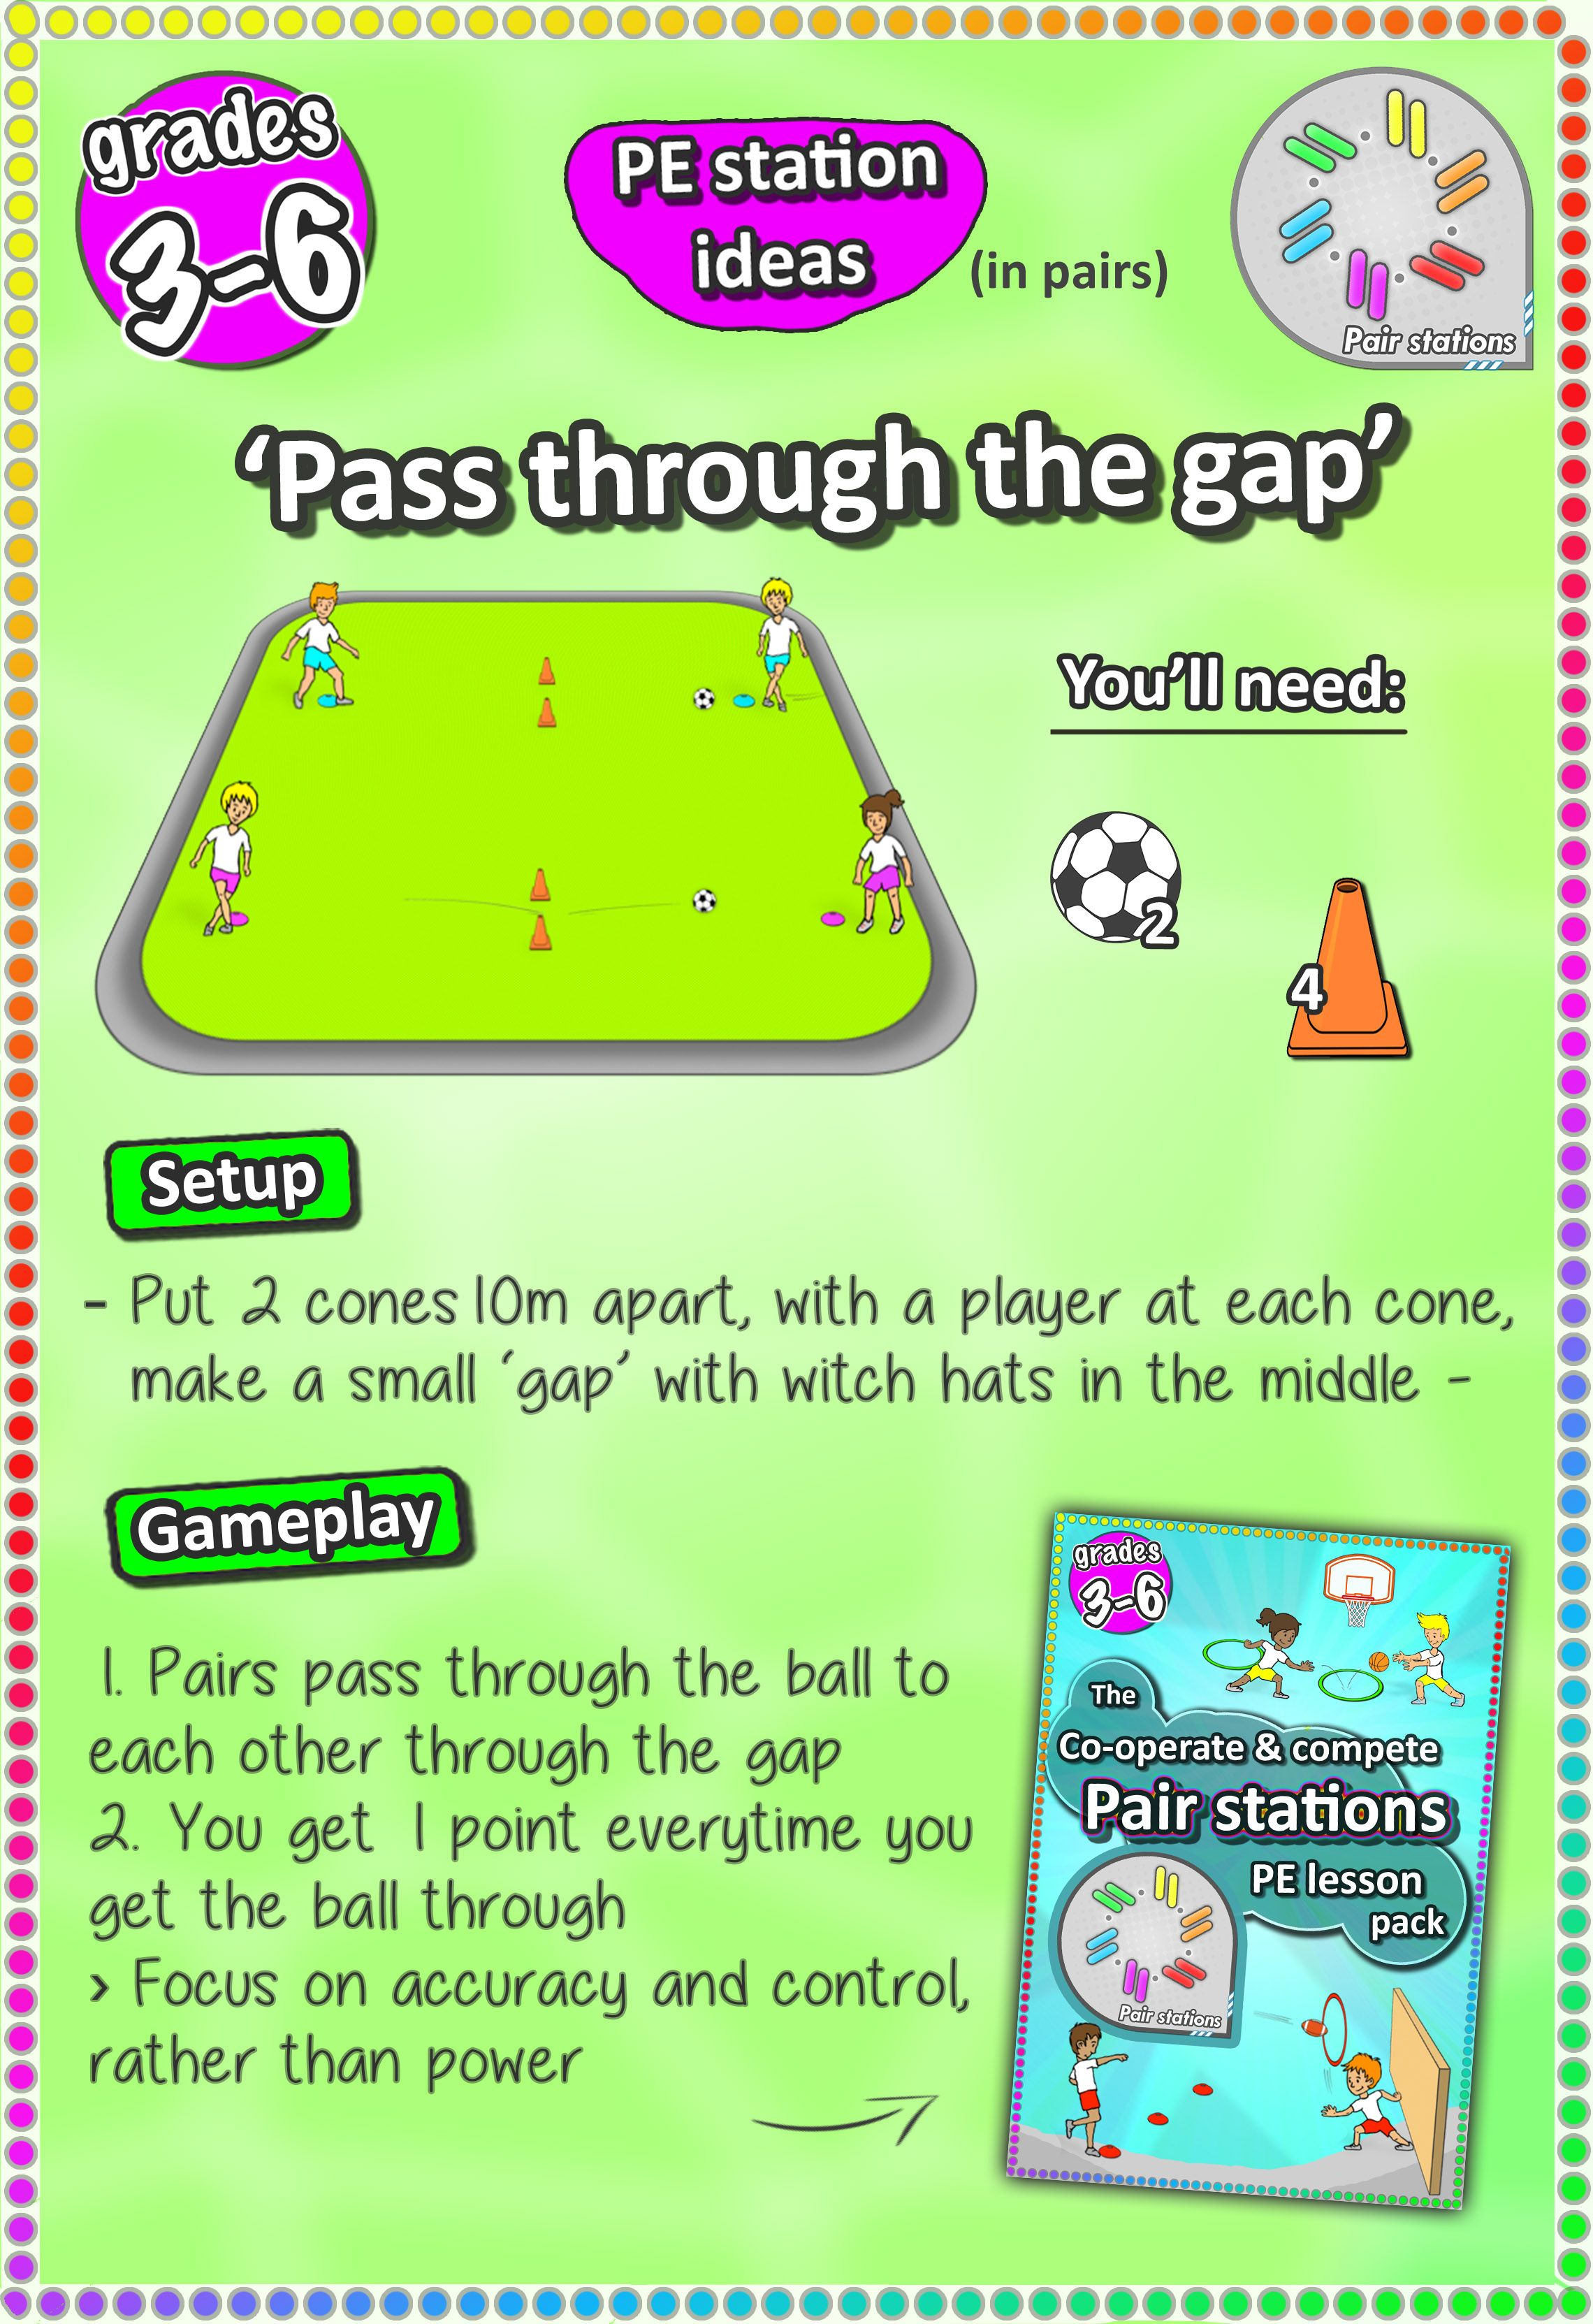 Soccer Skill Station Games For Kids And Elementary Grades 3 6 Check More Pe Lesson Ideas Here Soccer Drills For Kids Coaching Kids Soccer Gym Games For Kids